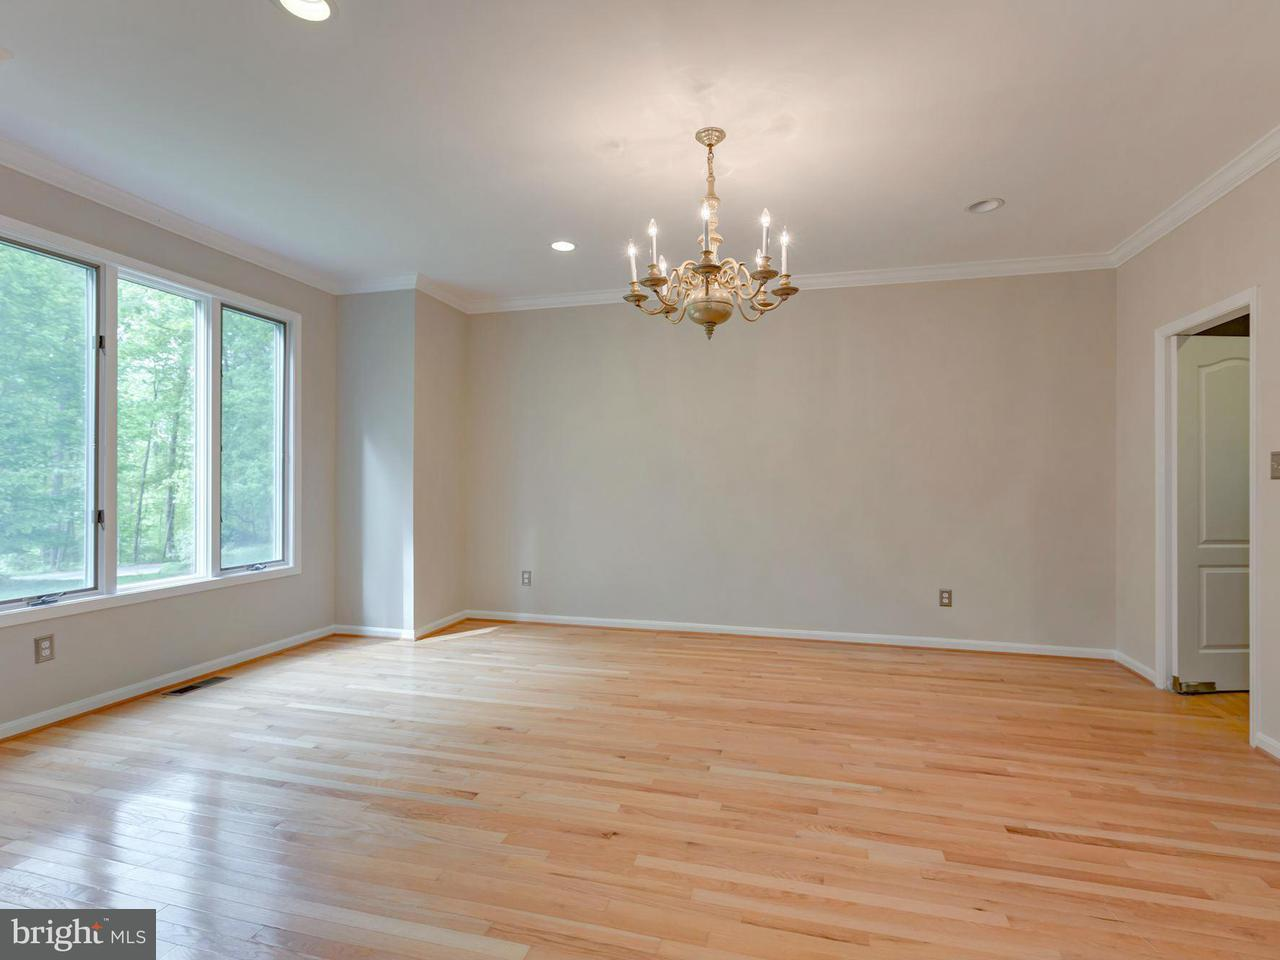 Additional photo for property listing at 974 MILLWOOD Lane 974 MILLWOOD Lane Great Falls, Virginia 22066 United States